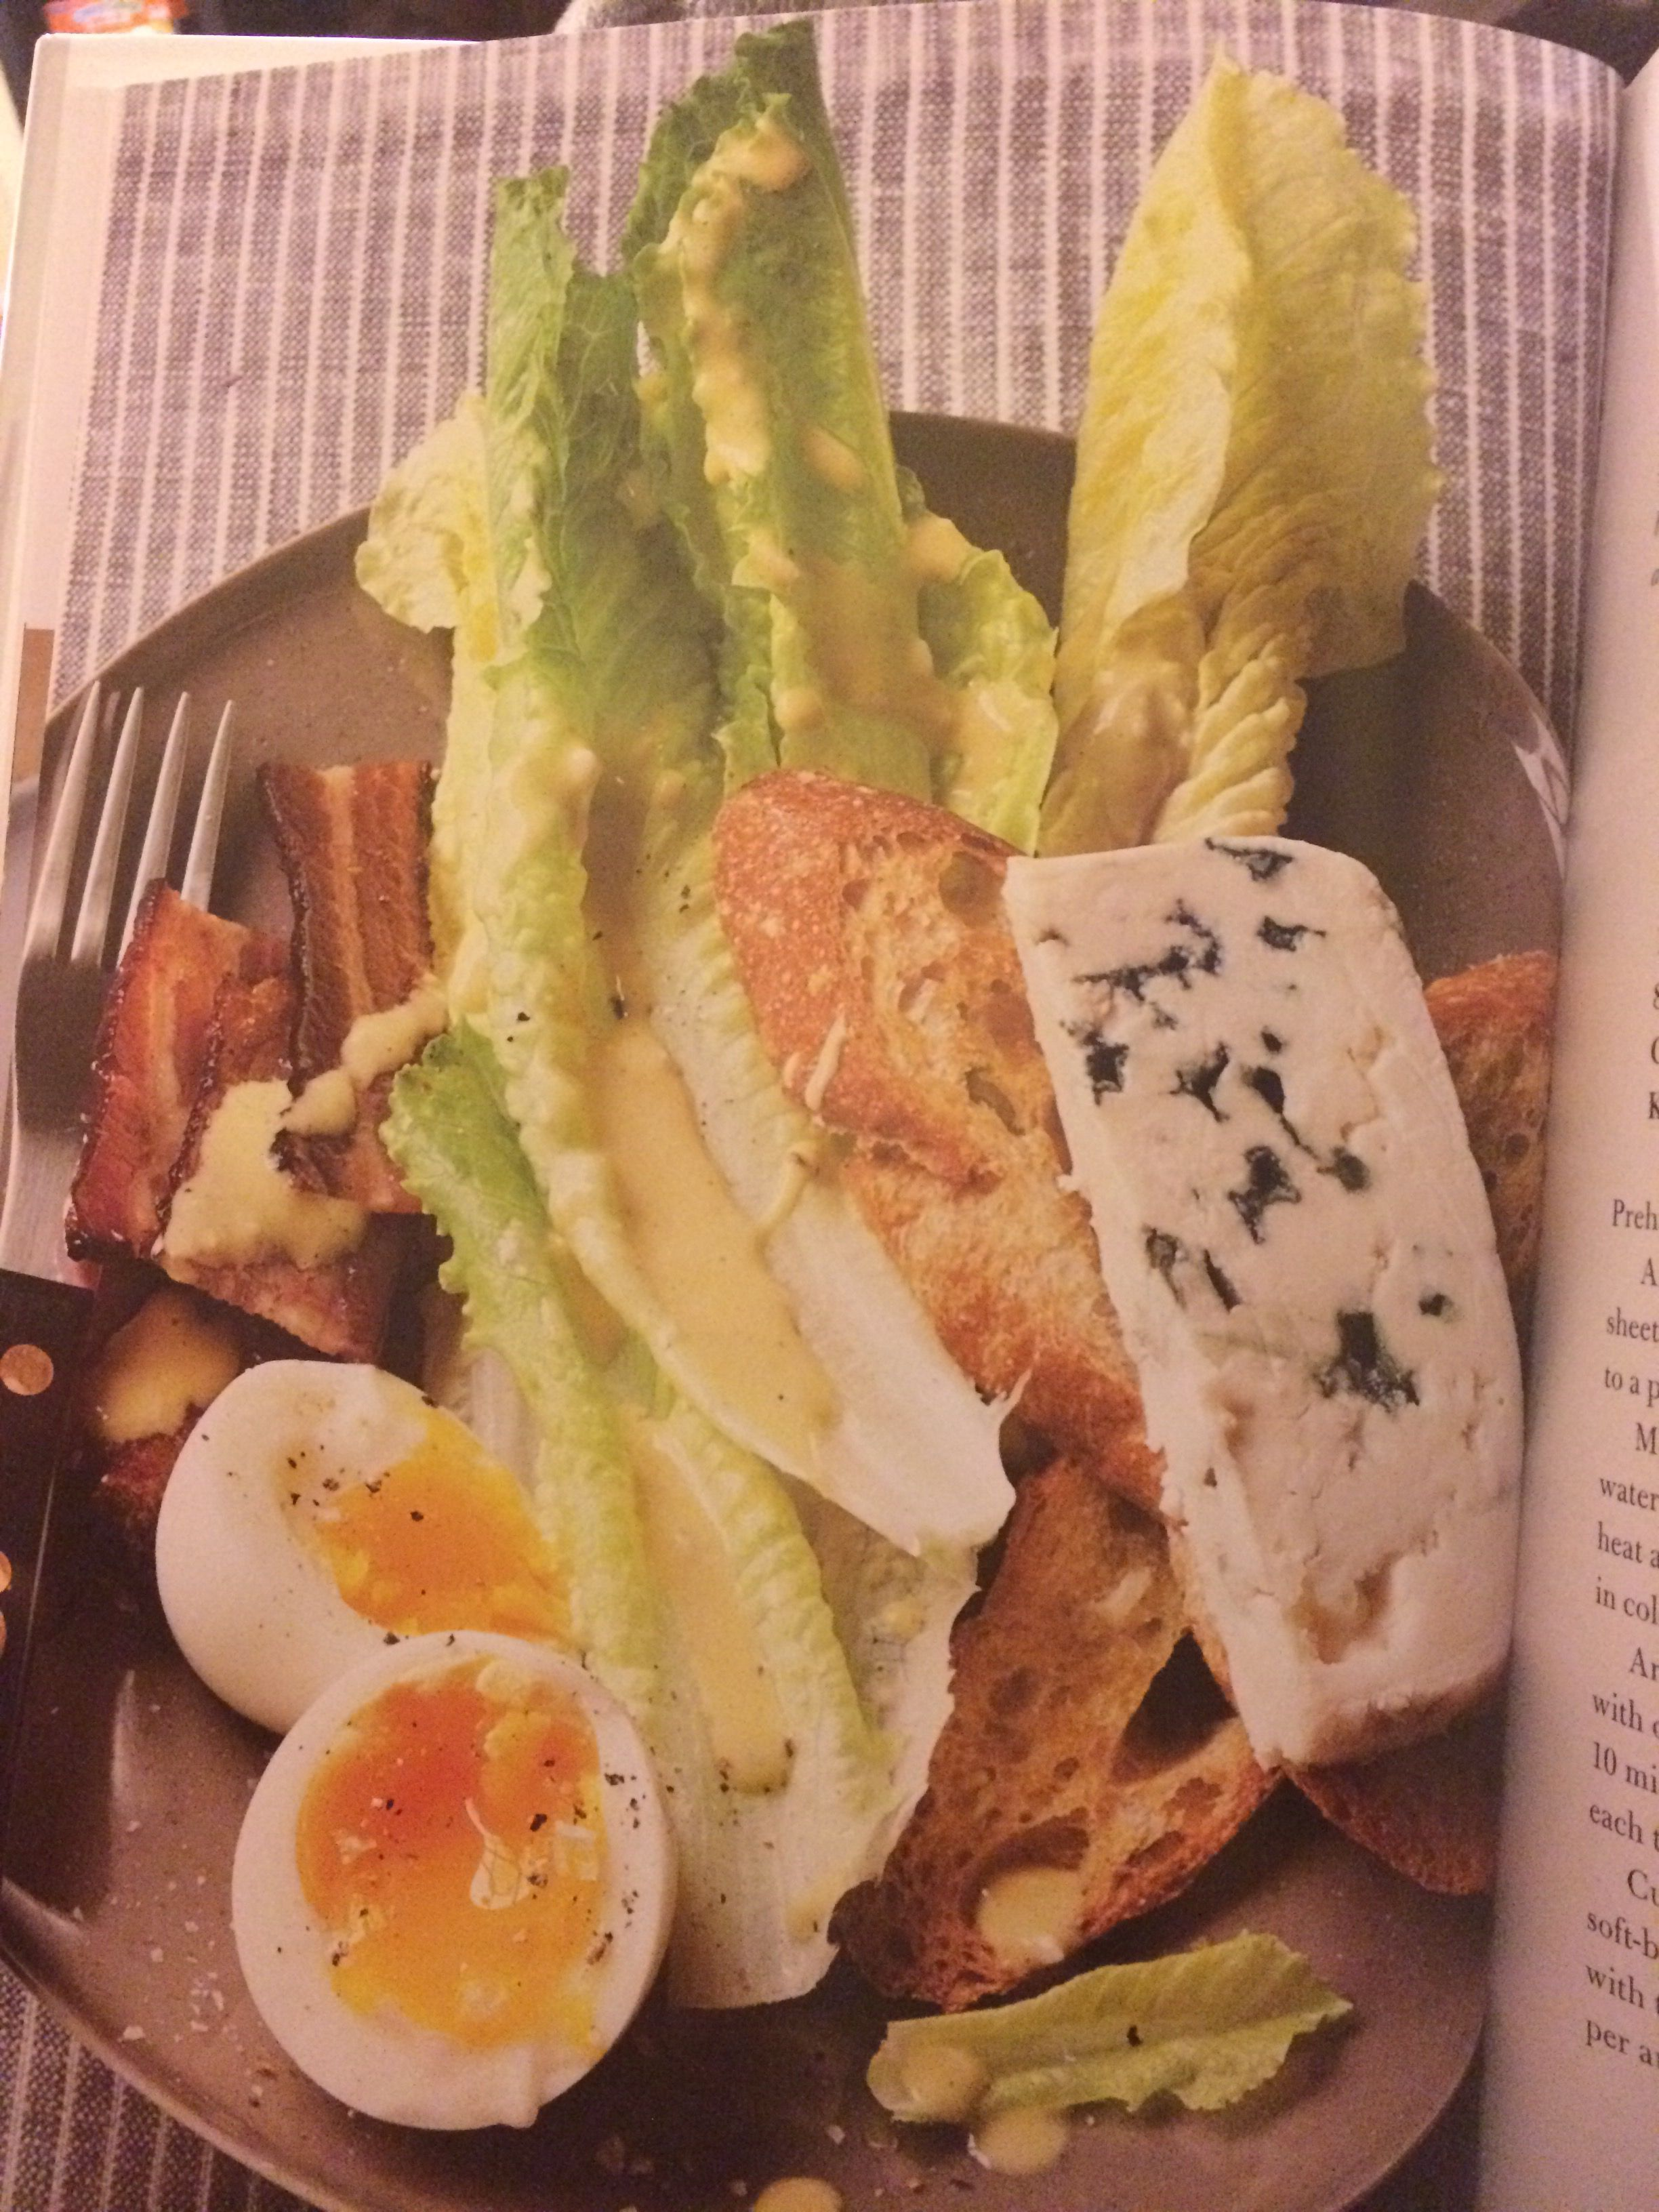 ina garten ceasar salad set-up. blue cheese slice, soft boiled egg